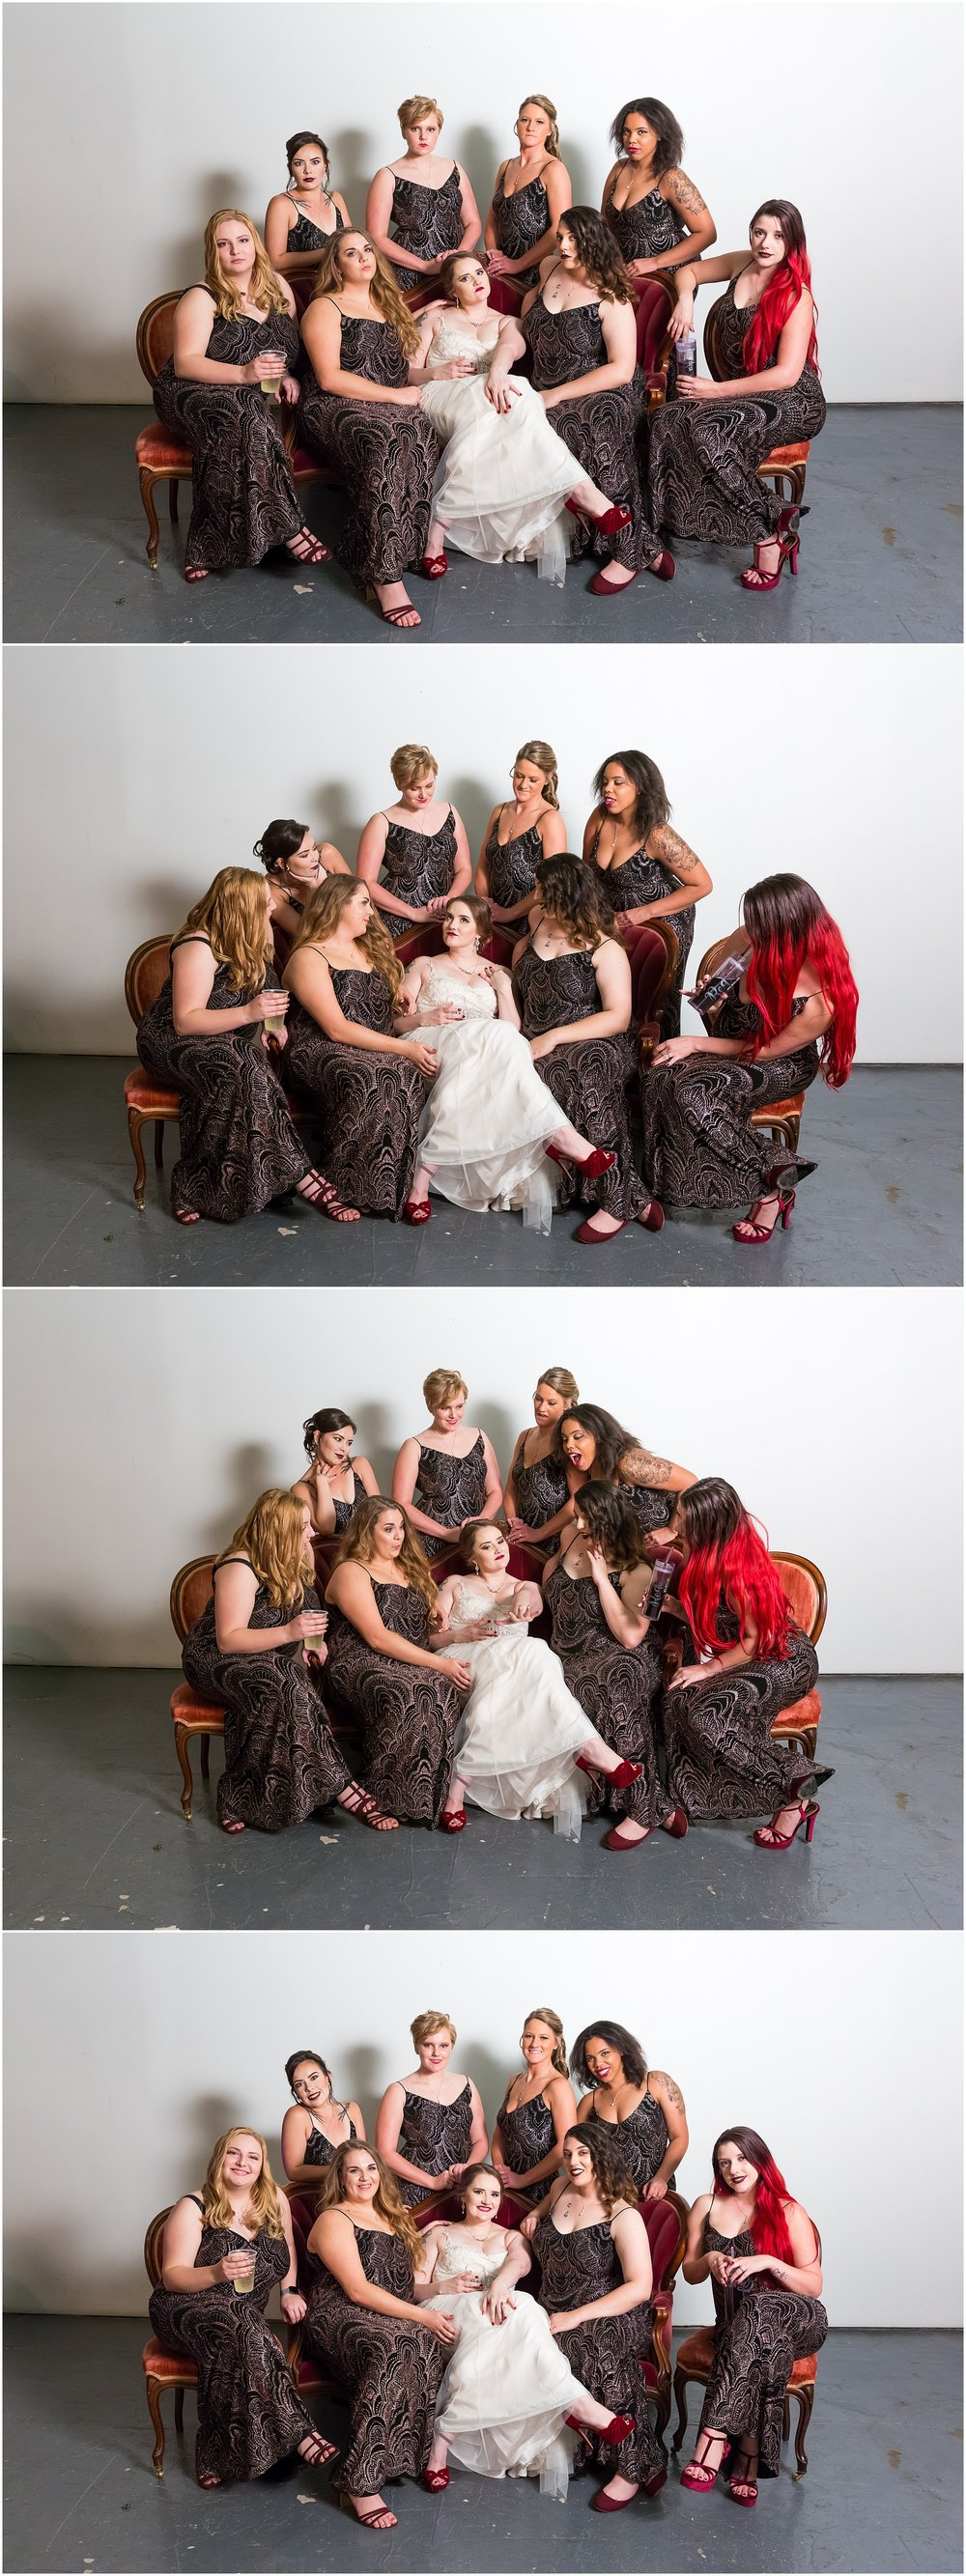 Bridal party pose elegantly on sitting lounge area - Gothic Gatsby Reception - The Eagle Historic Warehouse - Jason & Melaina Photography - http://jasonandmelaina.com